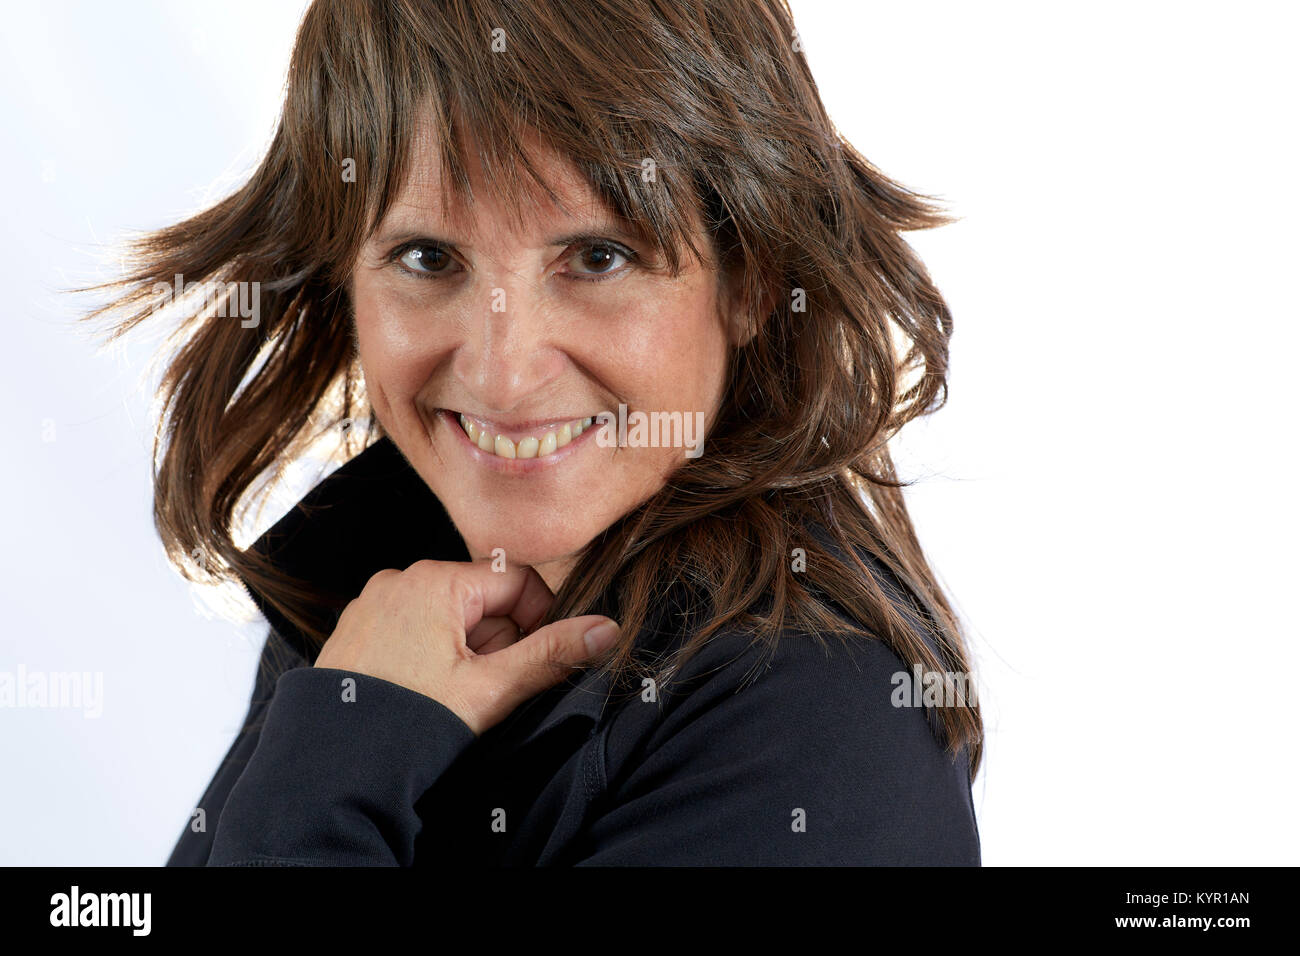 Middle aged woman with brown layered hair smiling isolated on white - Stock Image